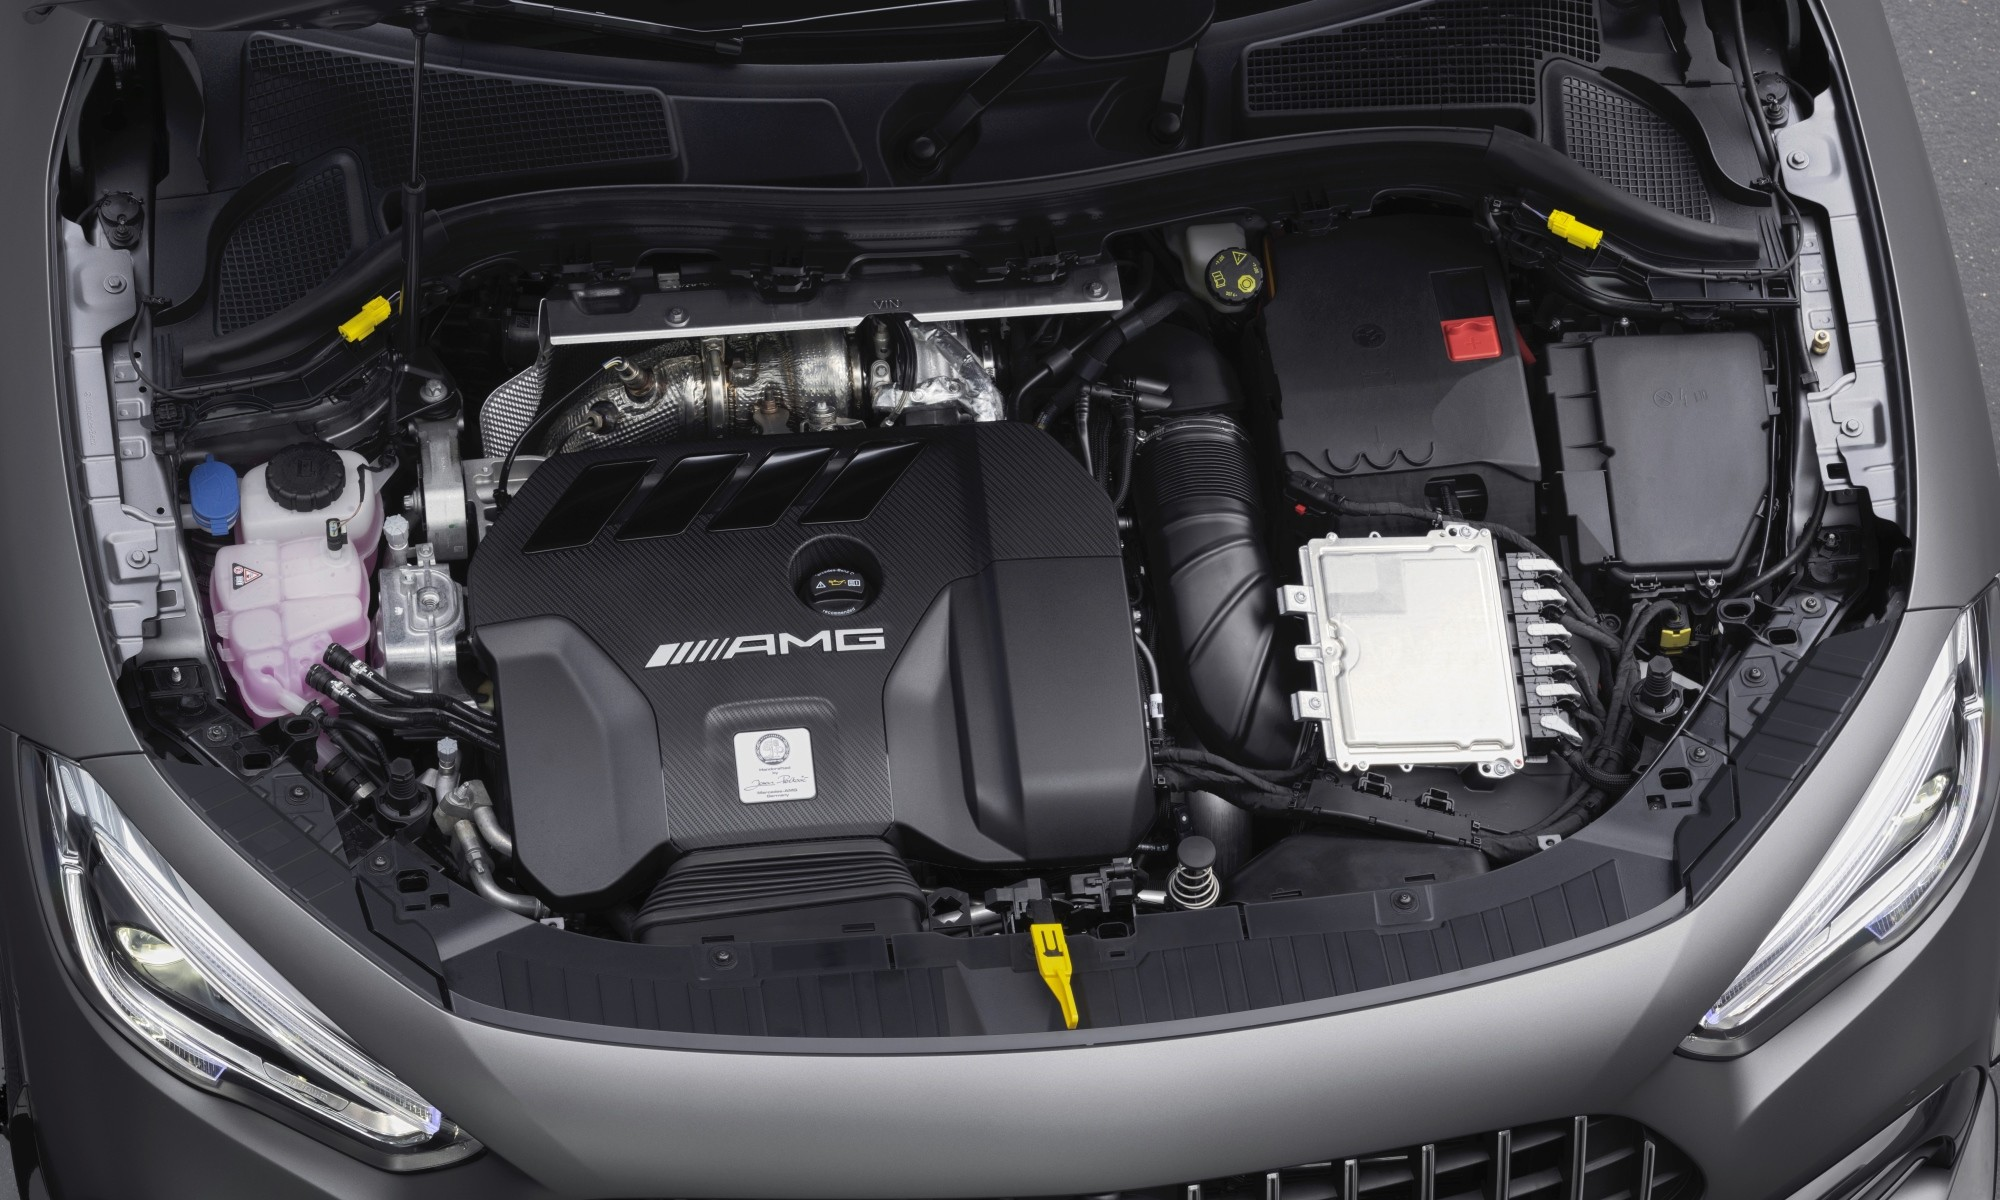 Mercedes-AMG GLA45 engine